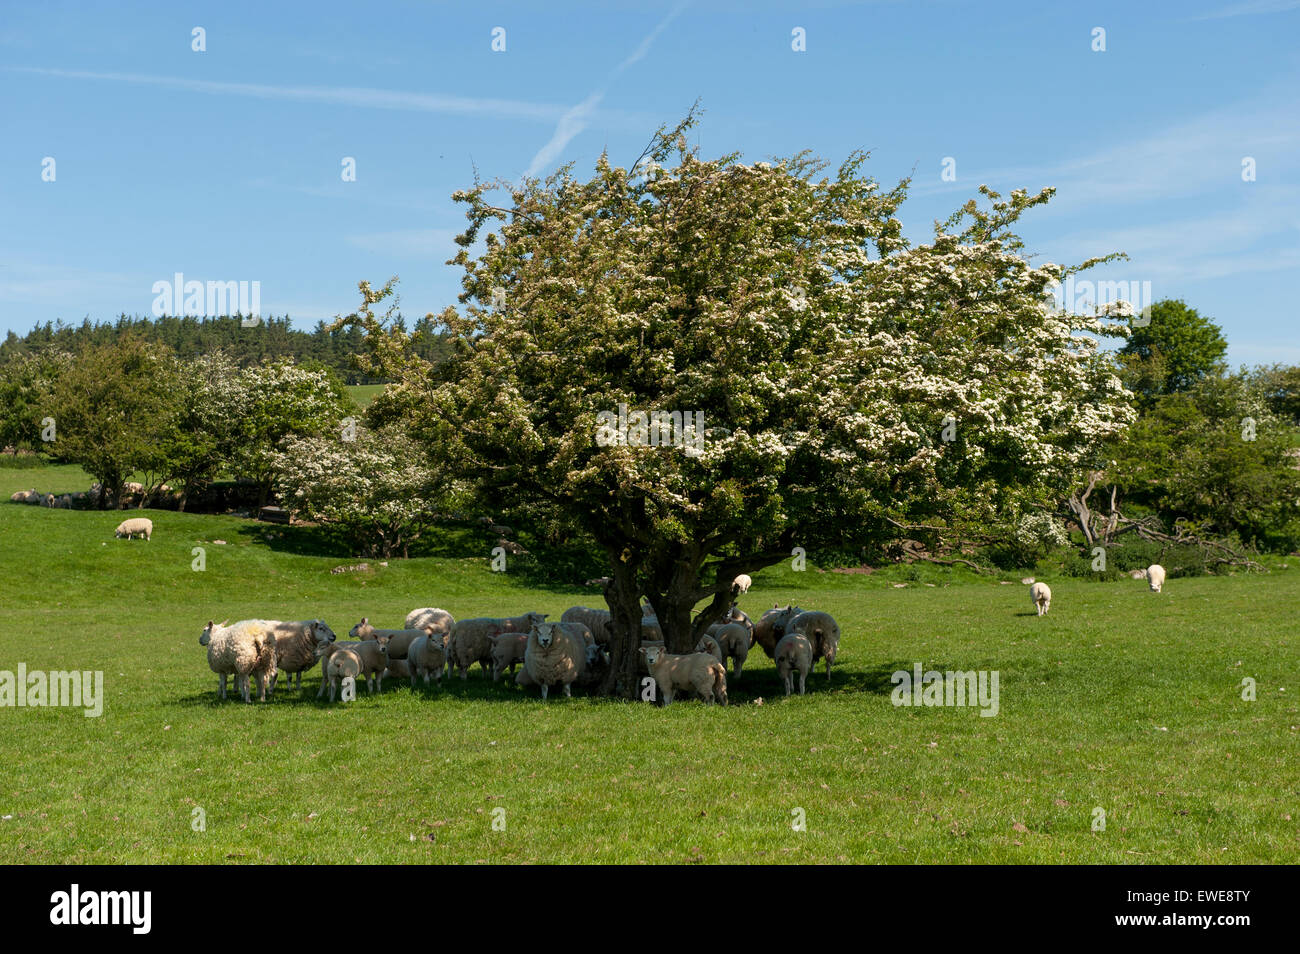 Flock of sheep sheltering from sun under a Hawthorn tree, Cumbria, UK - Stock Image